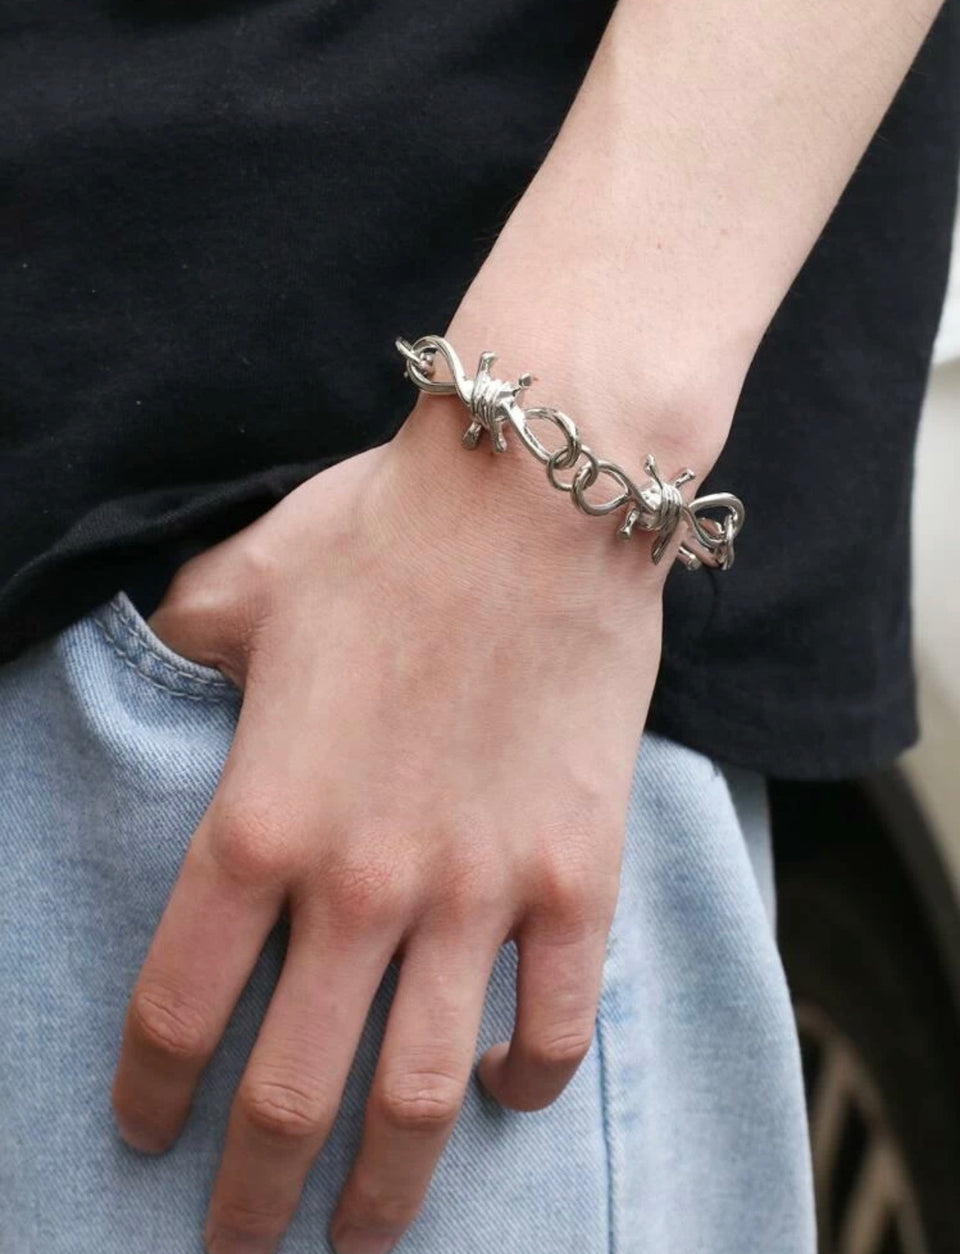 BARBED WIRE BRACELET